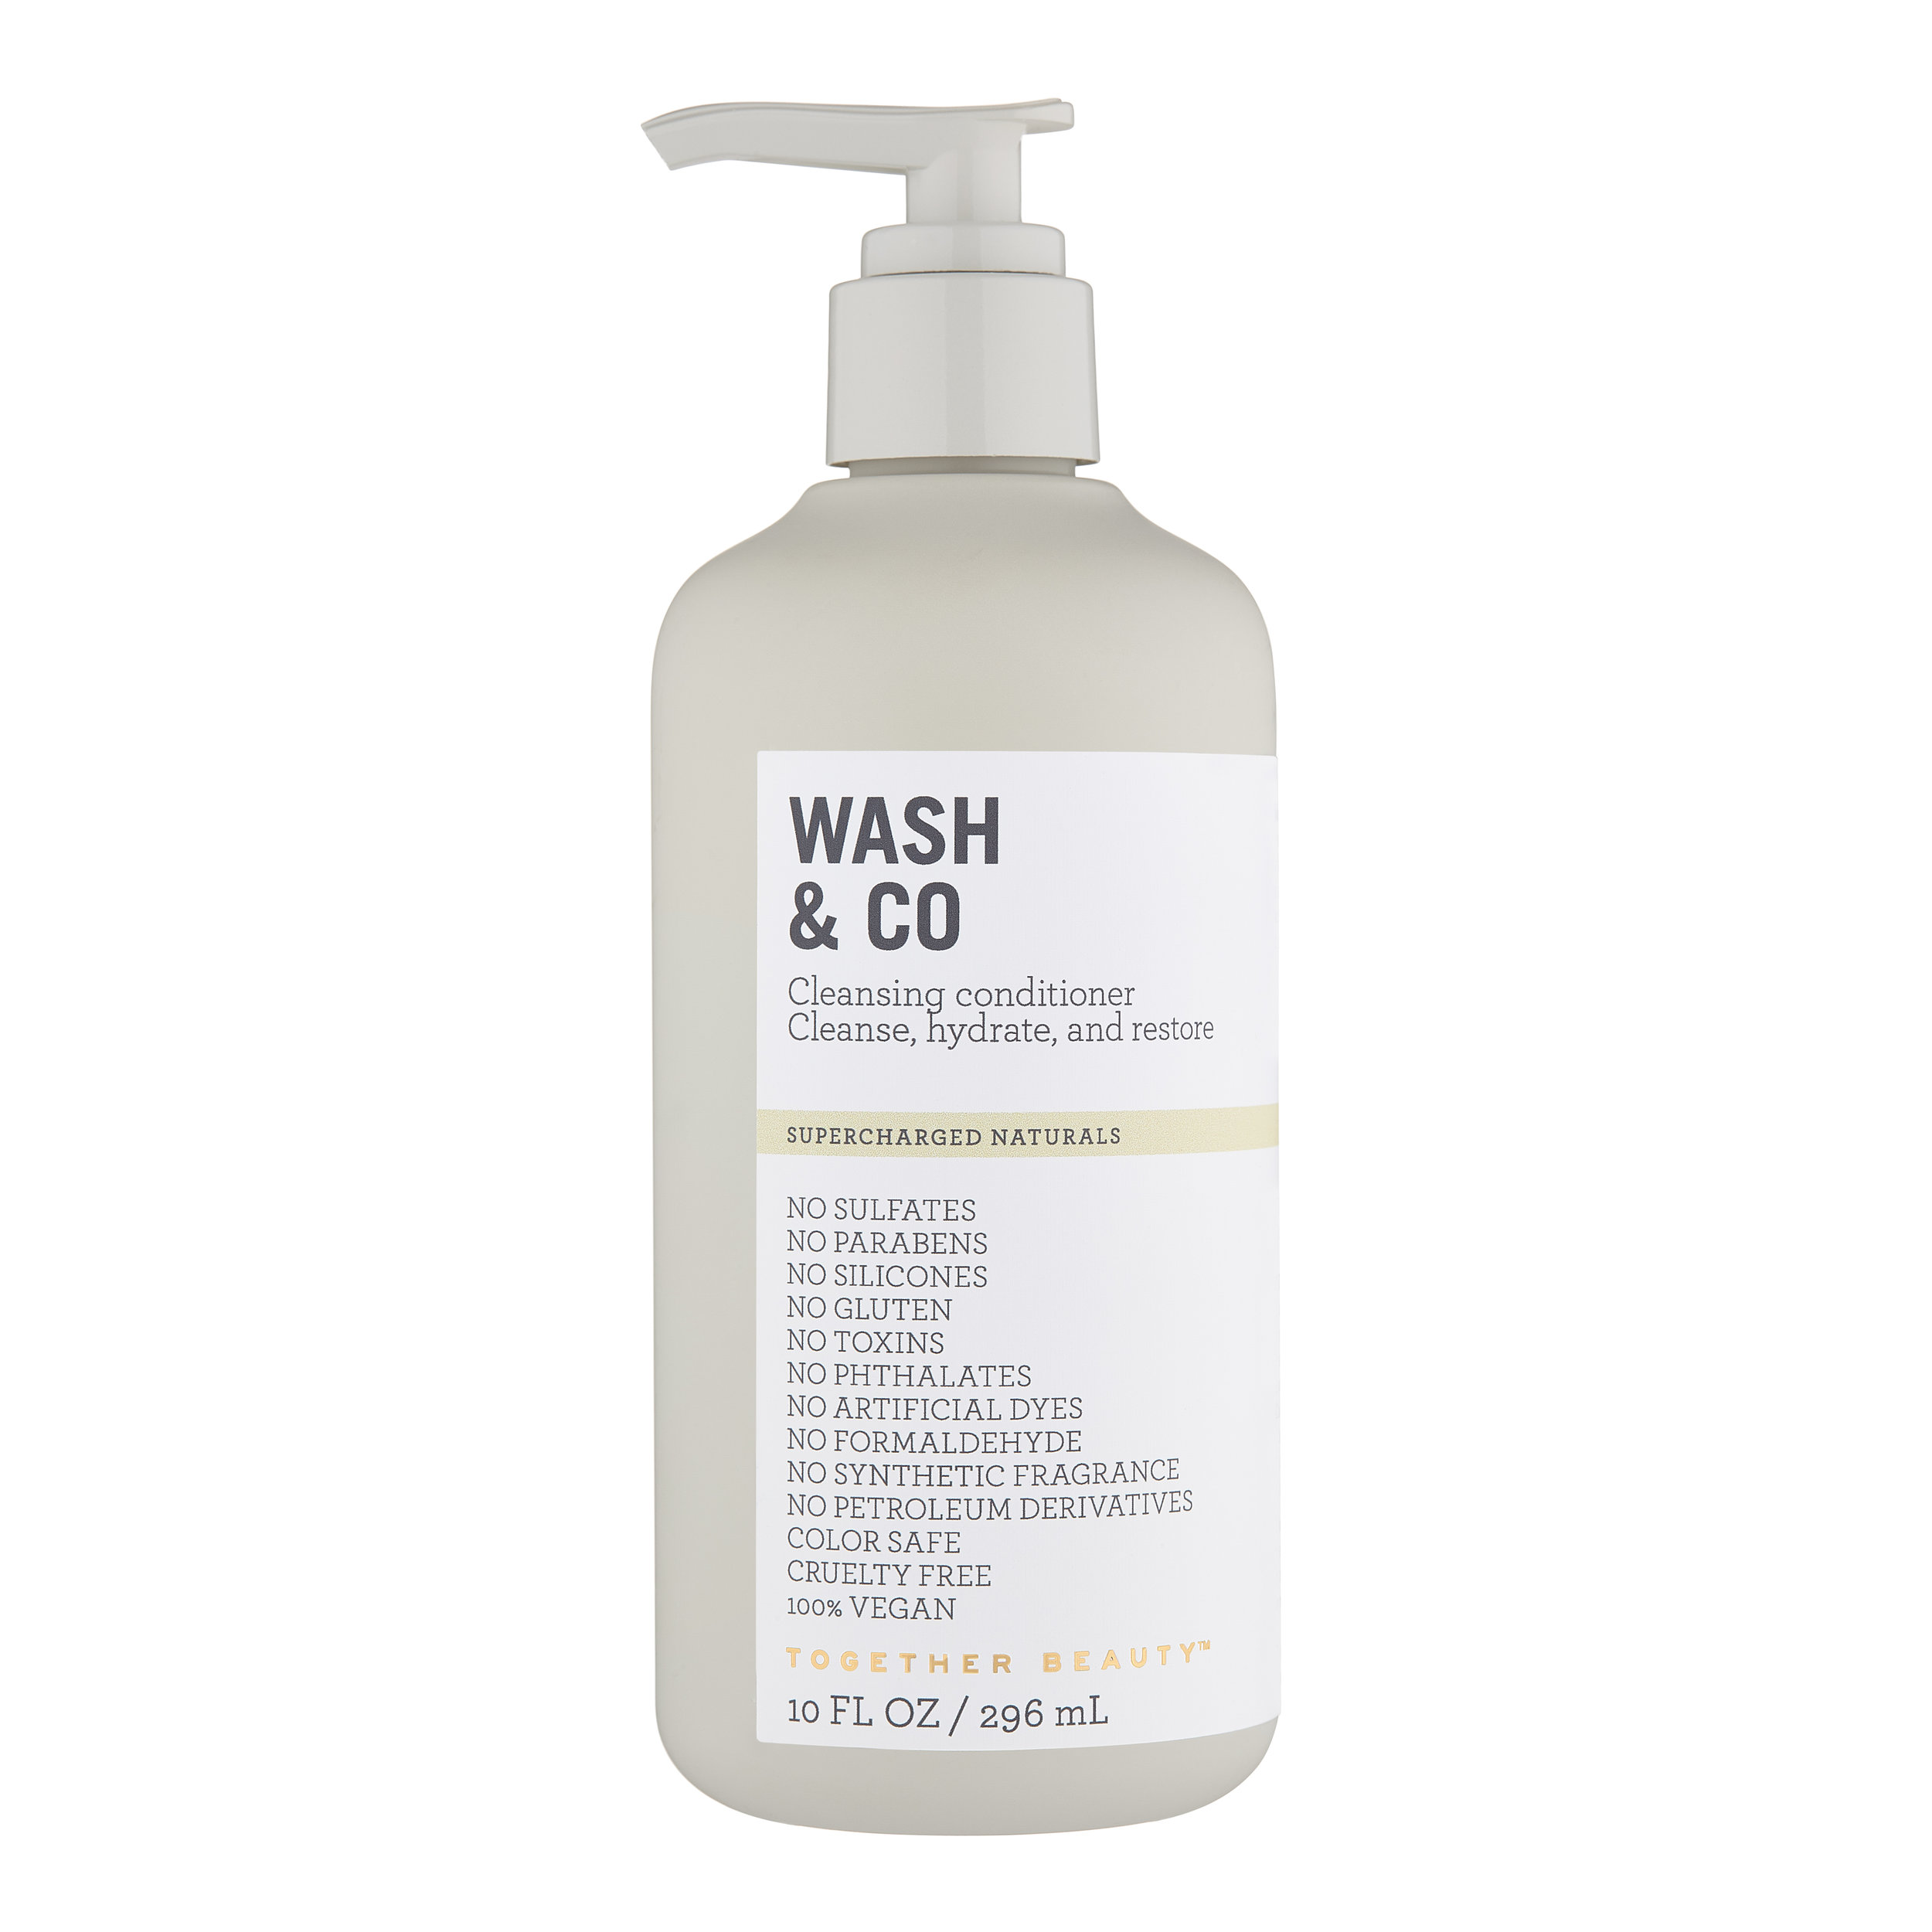 WASH & CO - Cleansing conditionerCleanse, hydrate, and restore